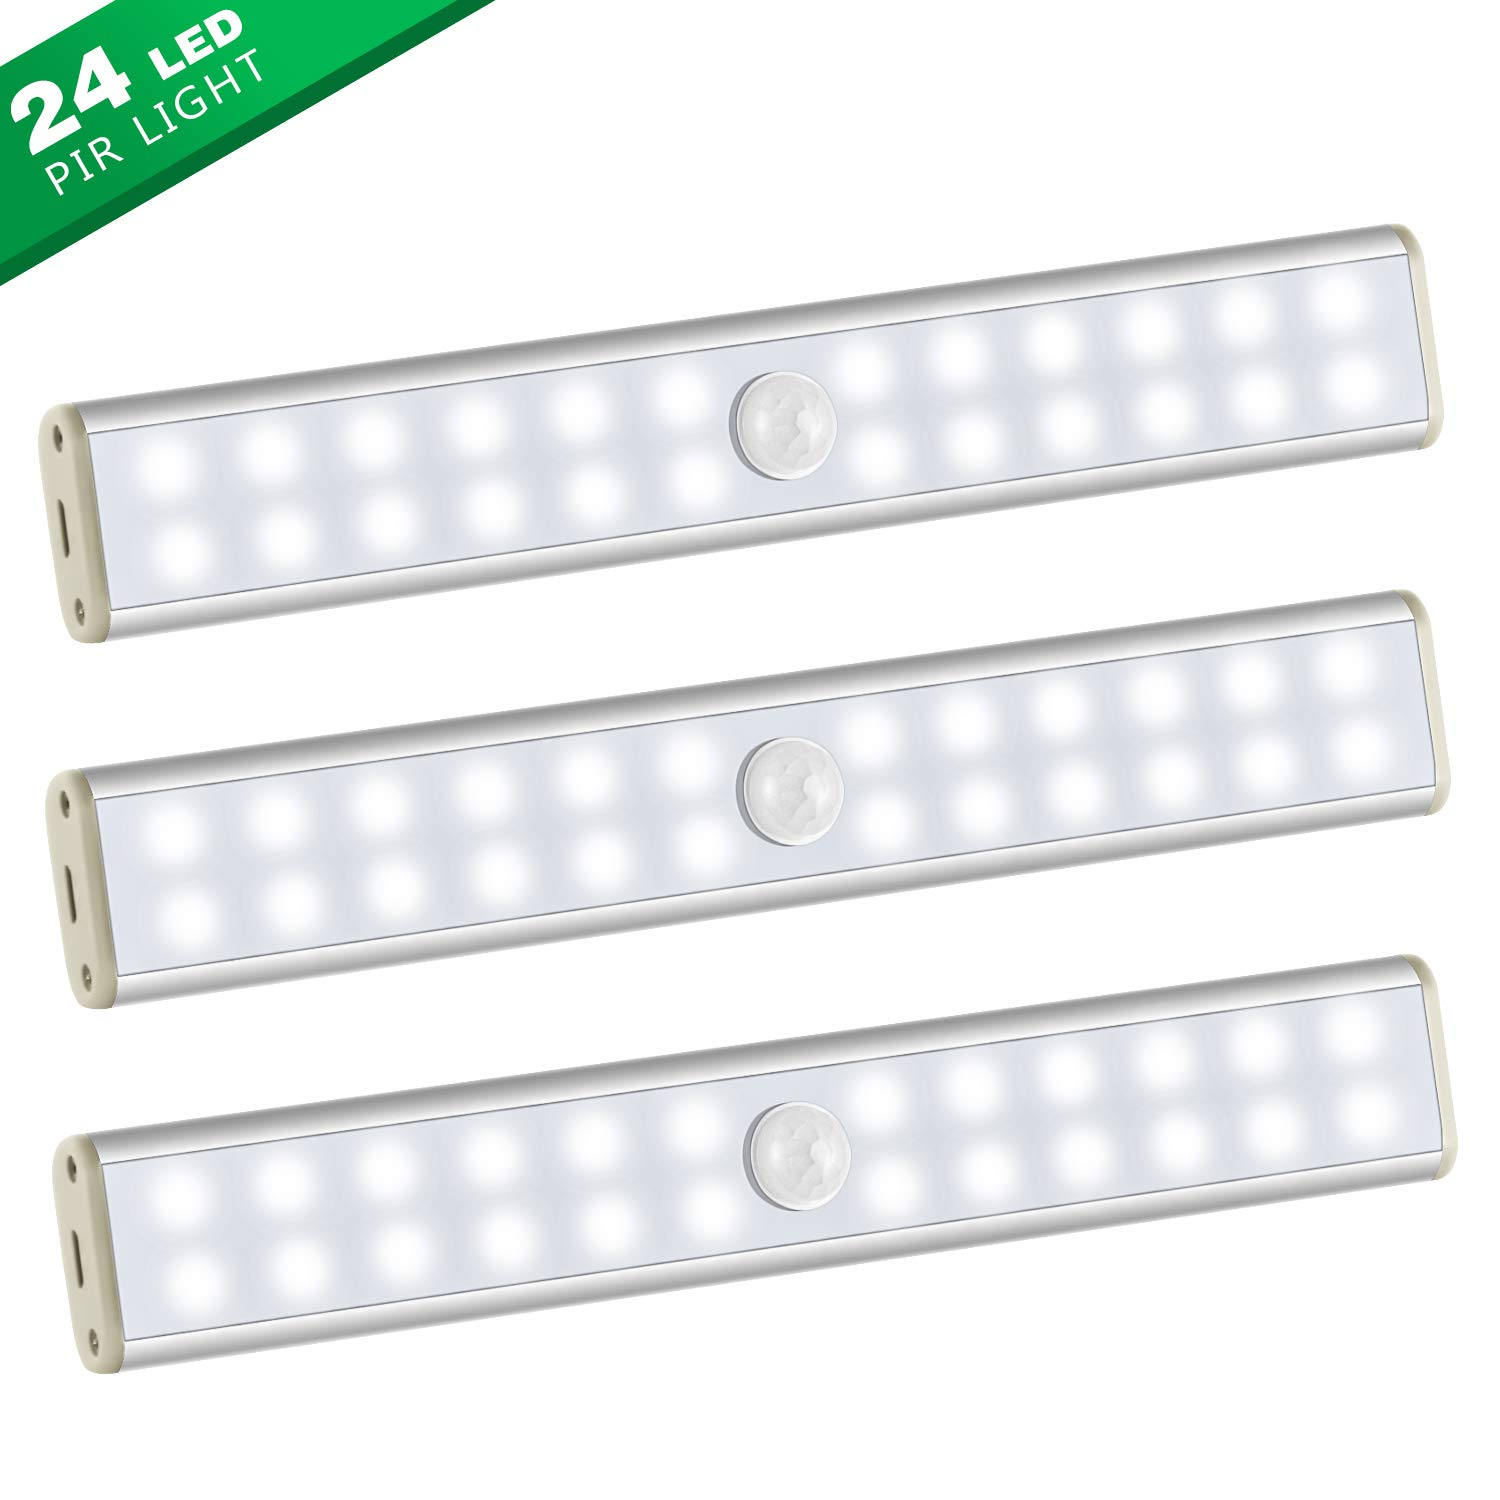 Under Cabinet Lighting,Wireless 24 LED Light 3 Packs with Built-in 1000mAh Rechargeable Battery,Motion Sensor Night Light-Security Dimmable,Portable Magnetic Closet Light for Closets/Stairs/Kitchen by Flow.month